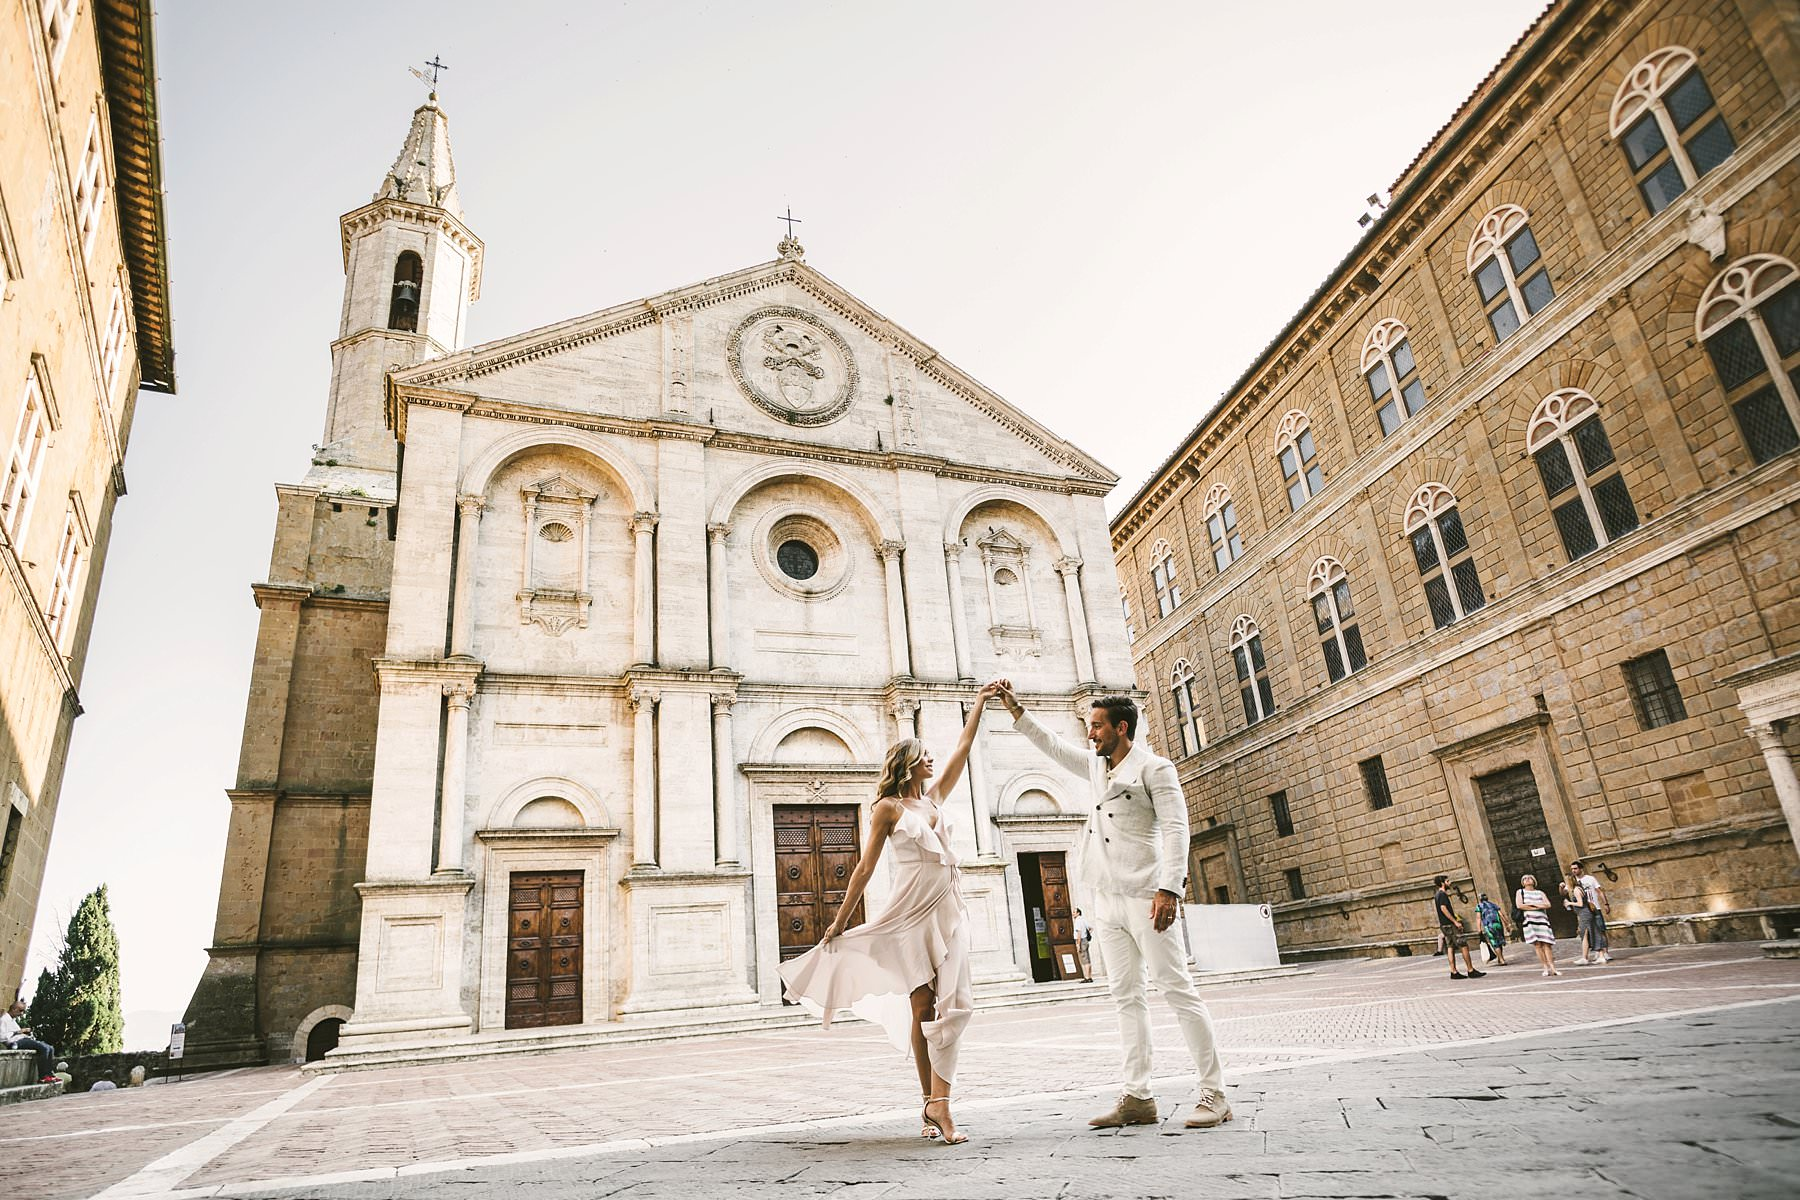 Charming honeymoon photo session in the historic town of Pienza in the Val D'Orcia area